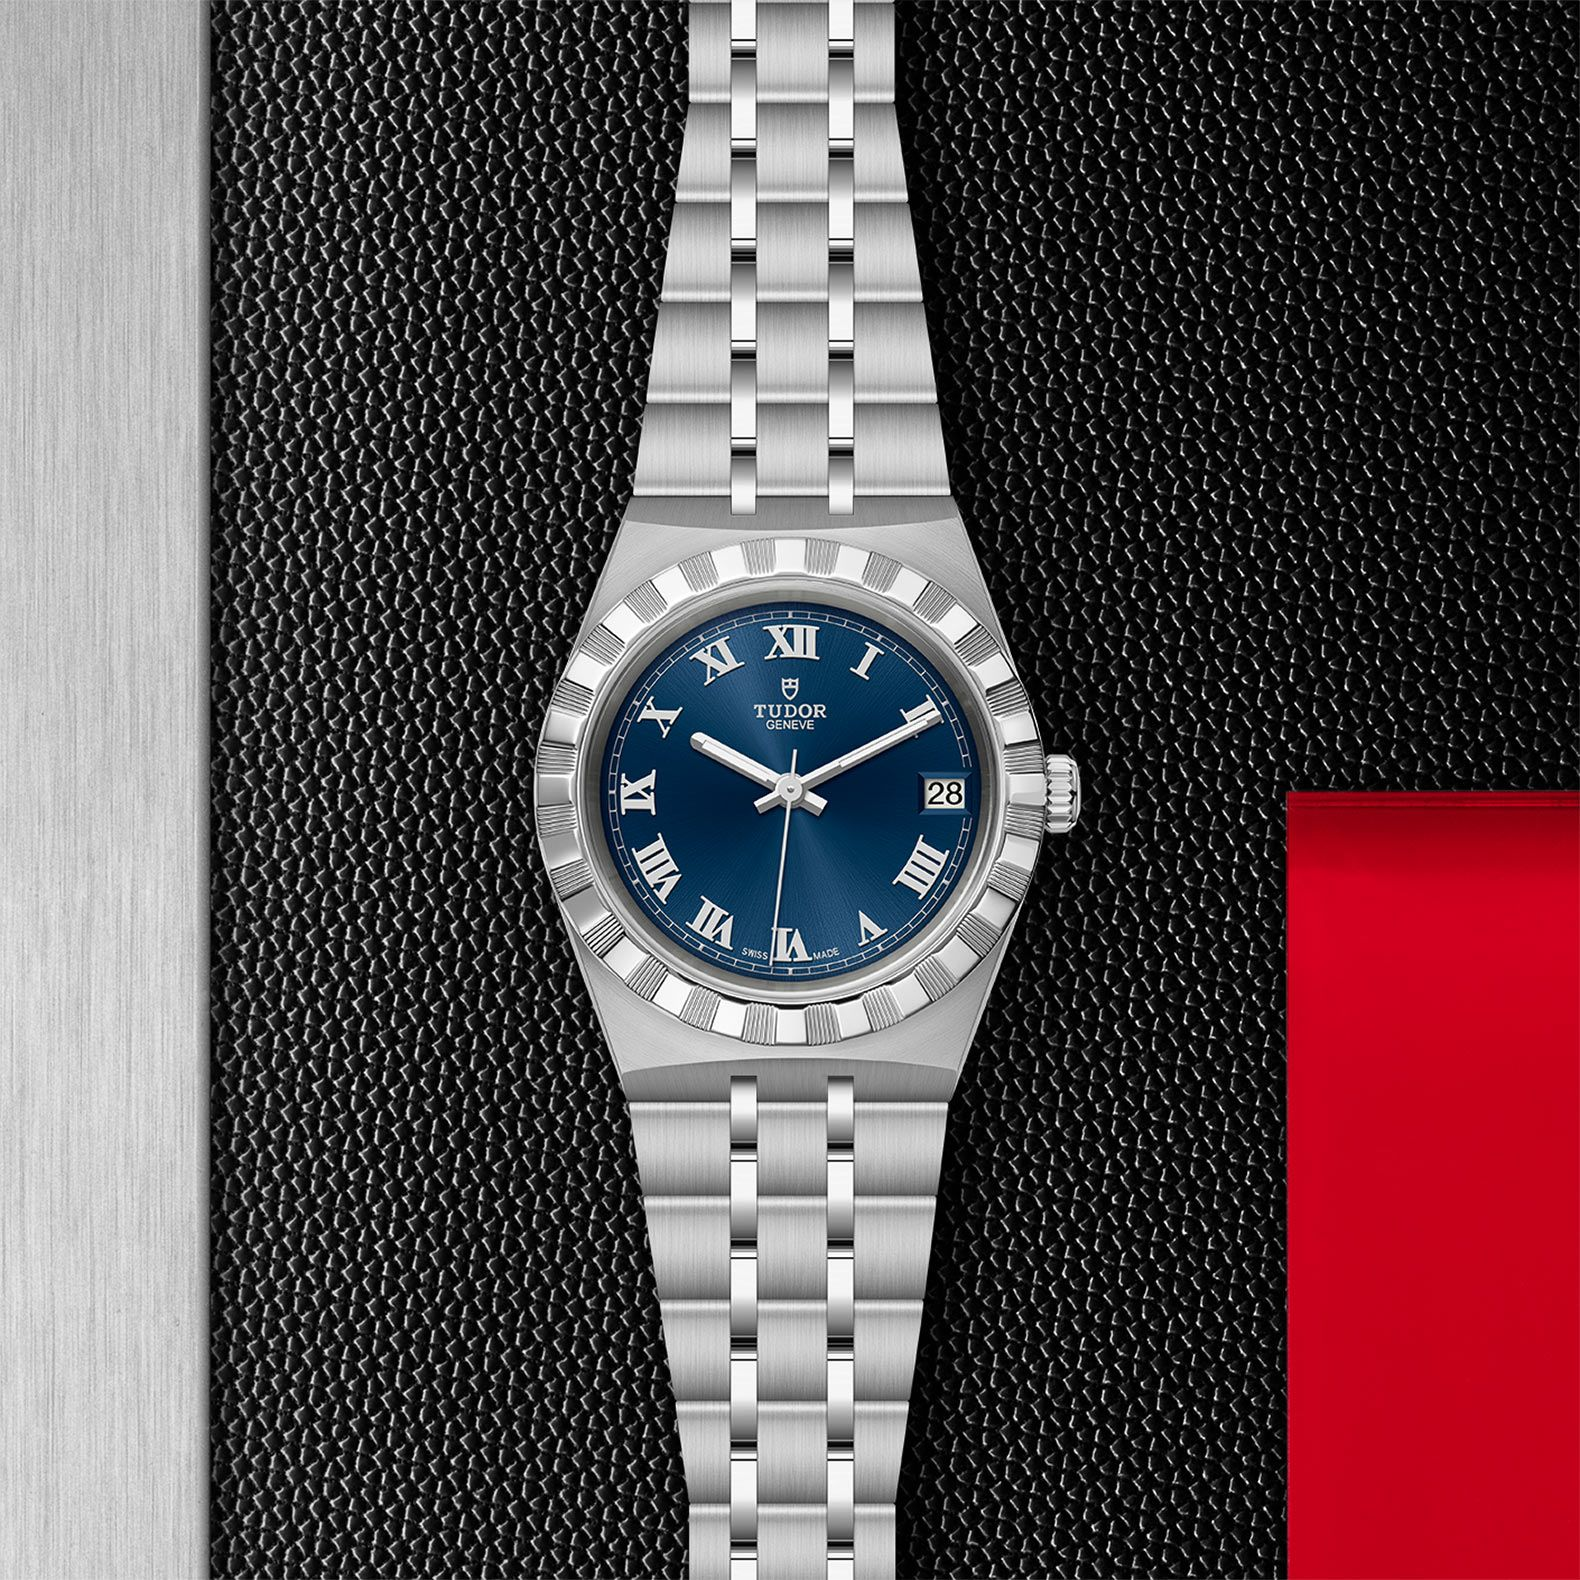 TUDOR ROYAL 28400 - 0006